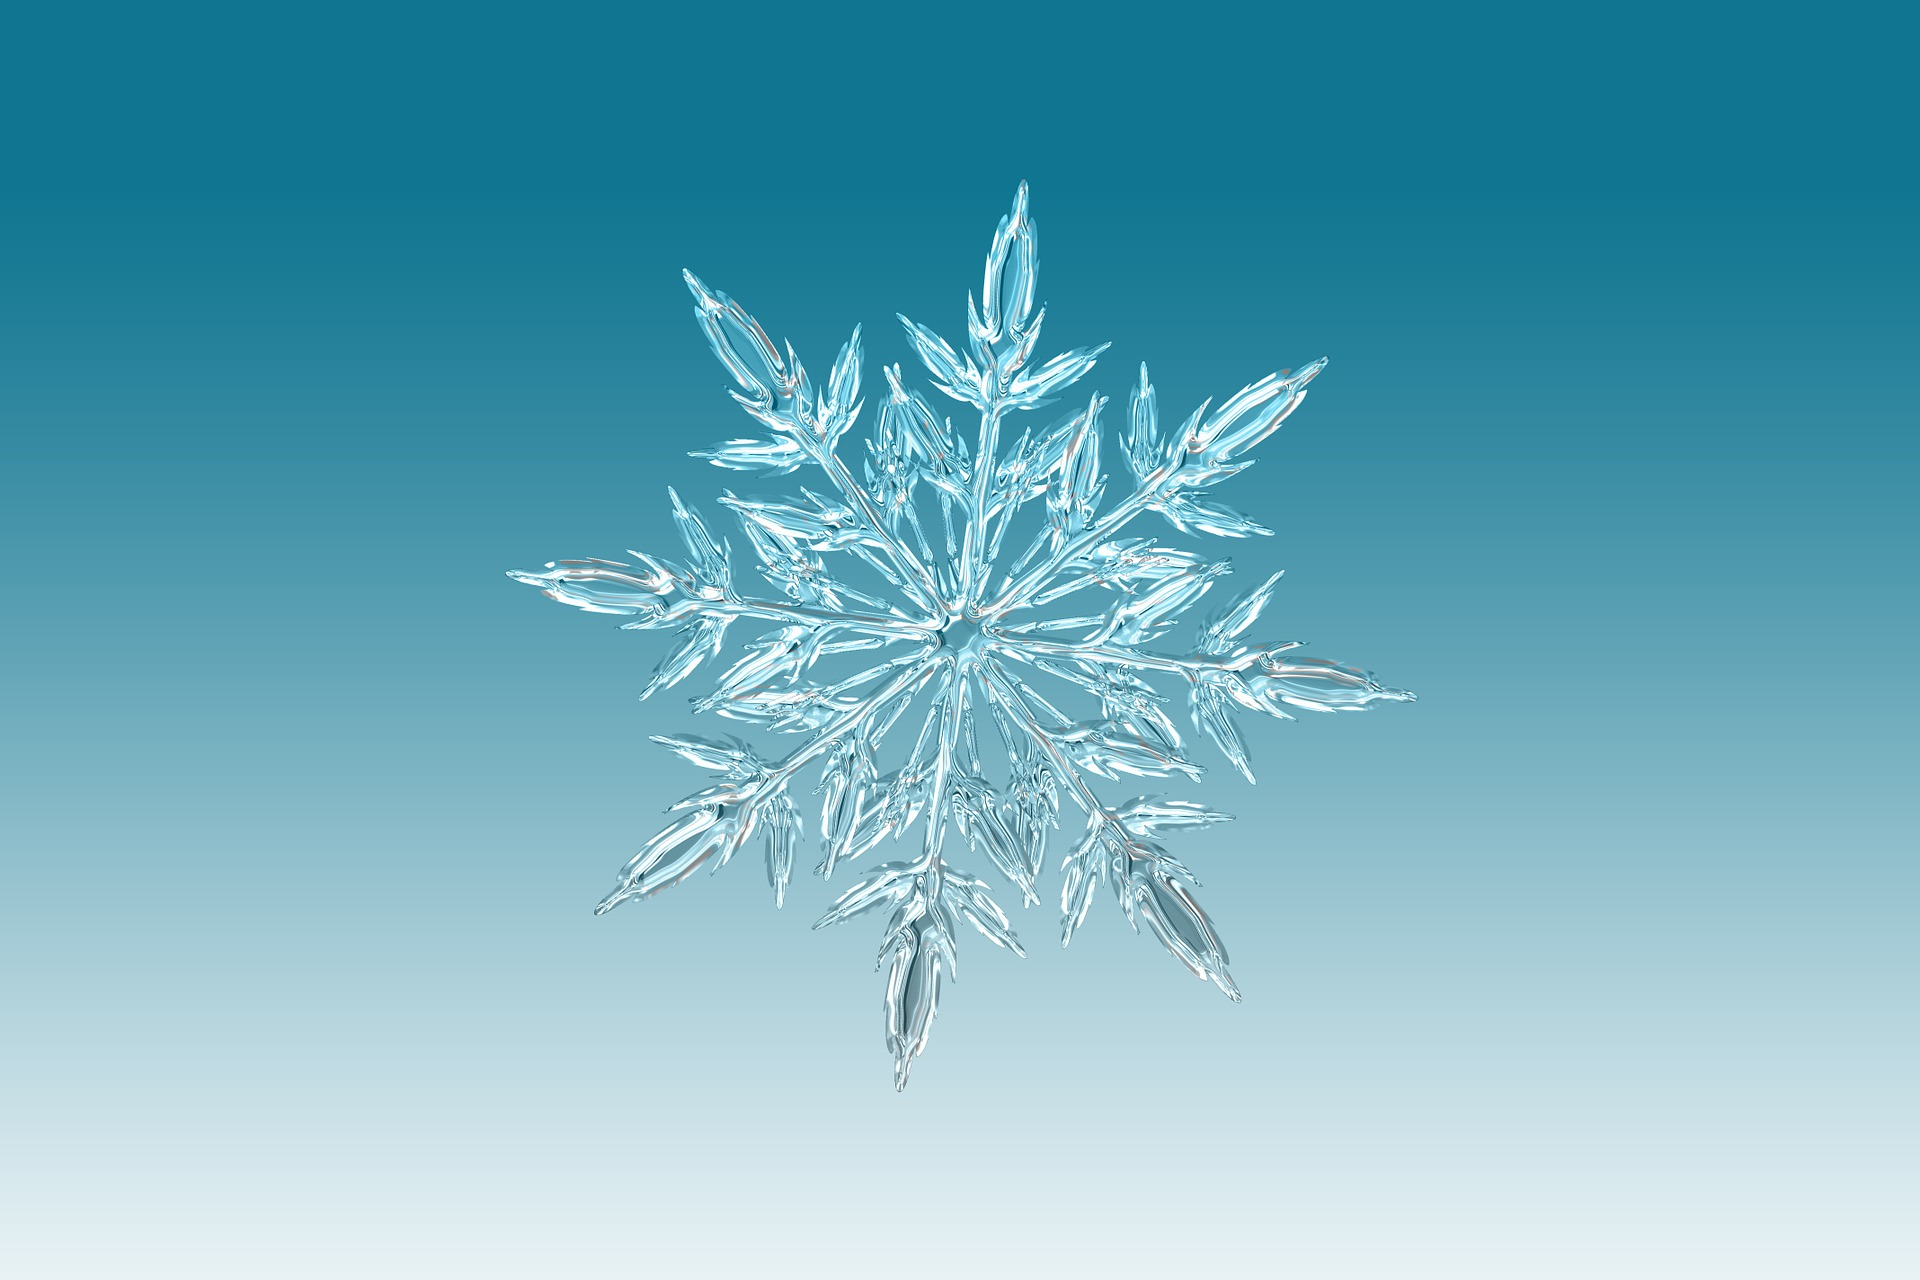 ice-crystal-1065155_1920.jpg